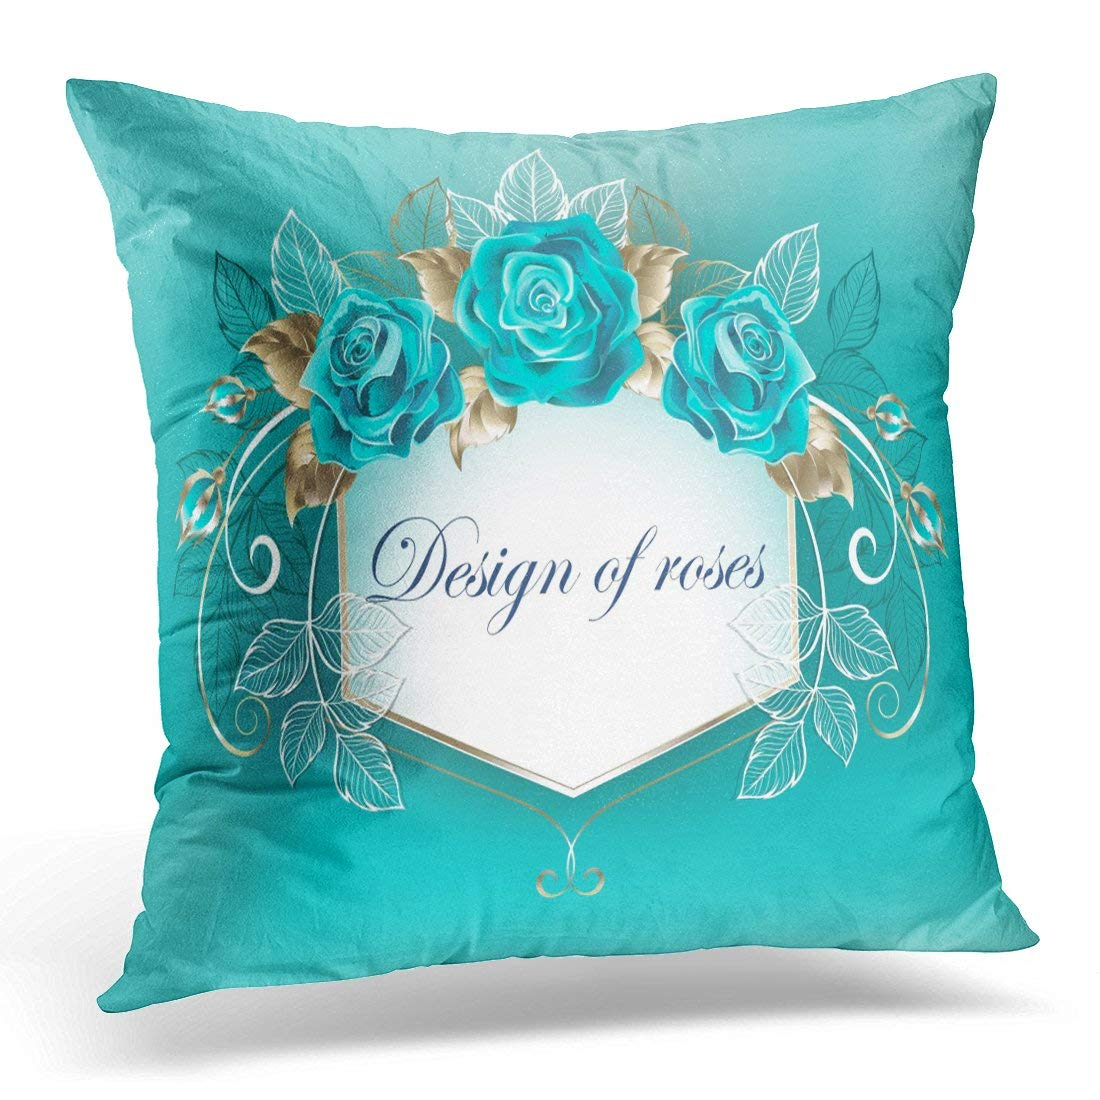 USART Blue Best White Decorated with Turquoise Roses with Leaves of Gold on Bloom Pillow Case Pillow Cover 20x20 inch